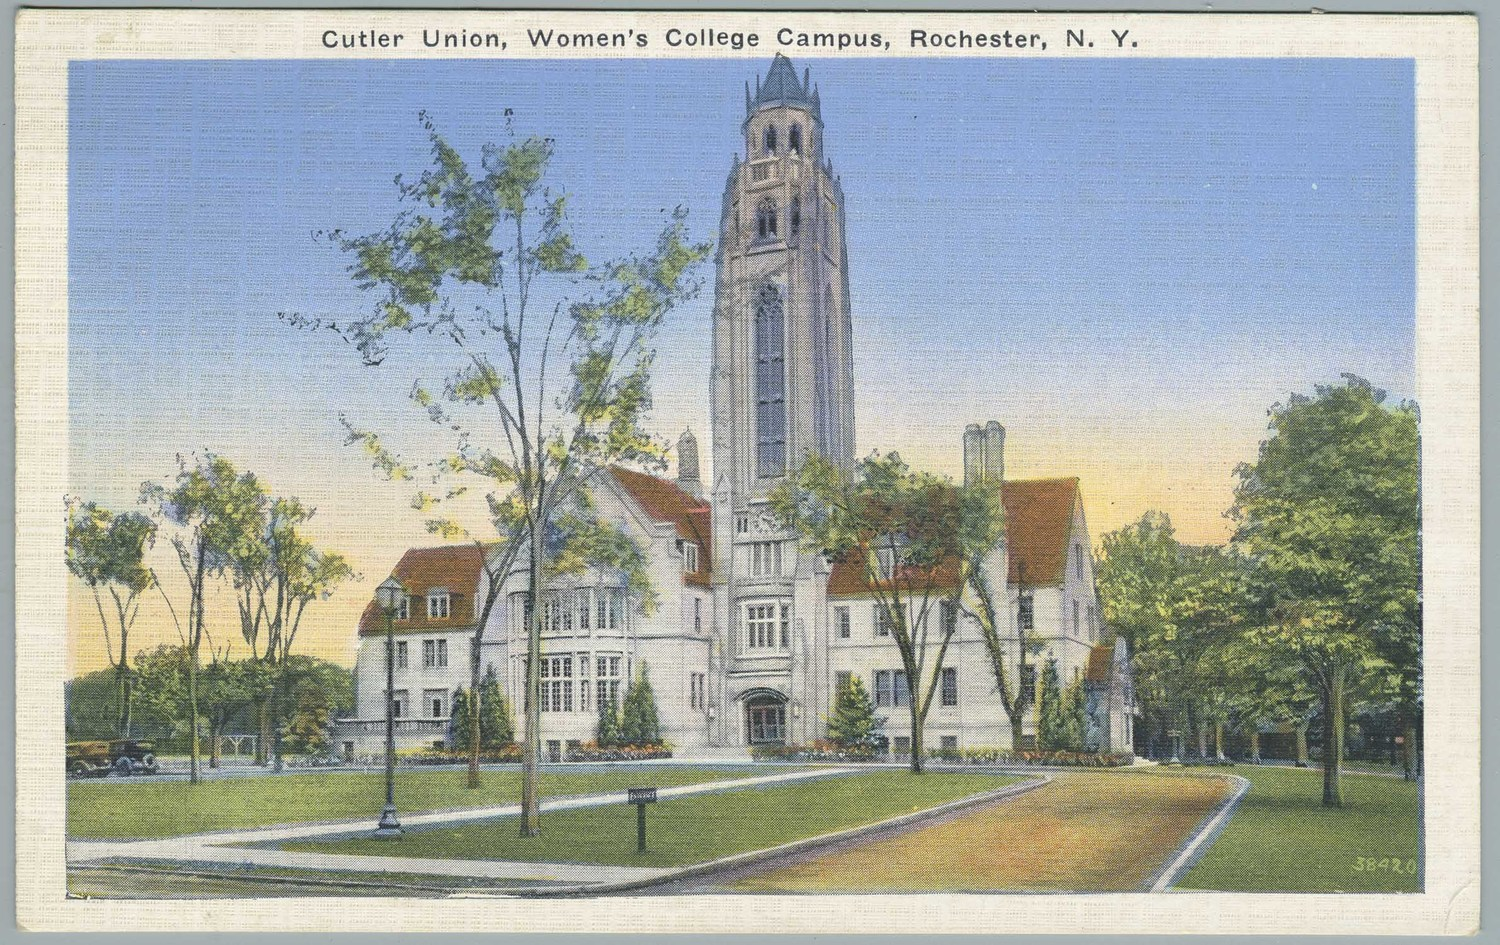 Cutler Union, Women's College Campus, Rochester, N.Y.